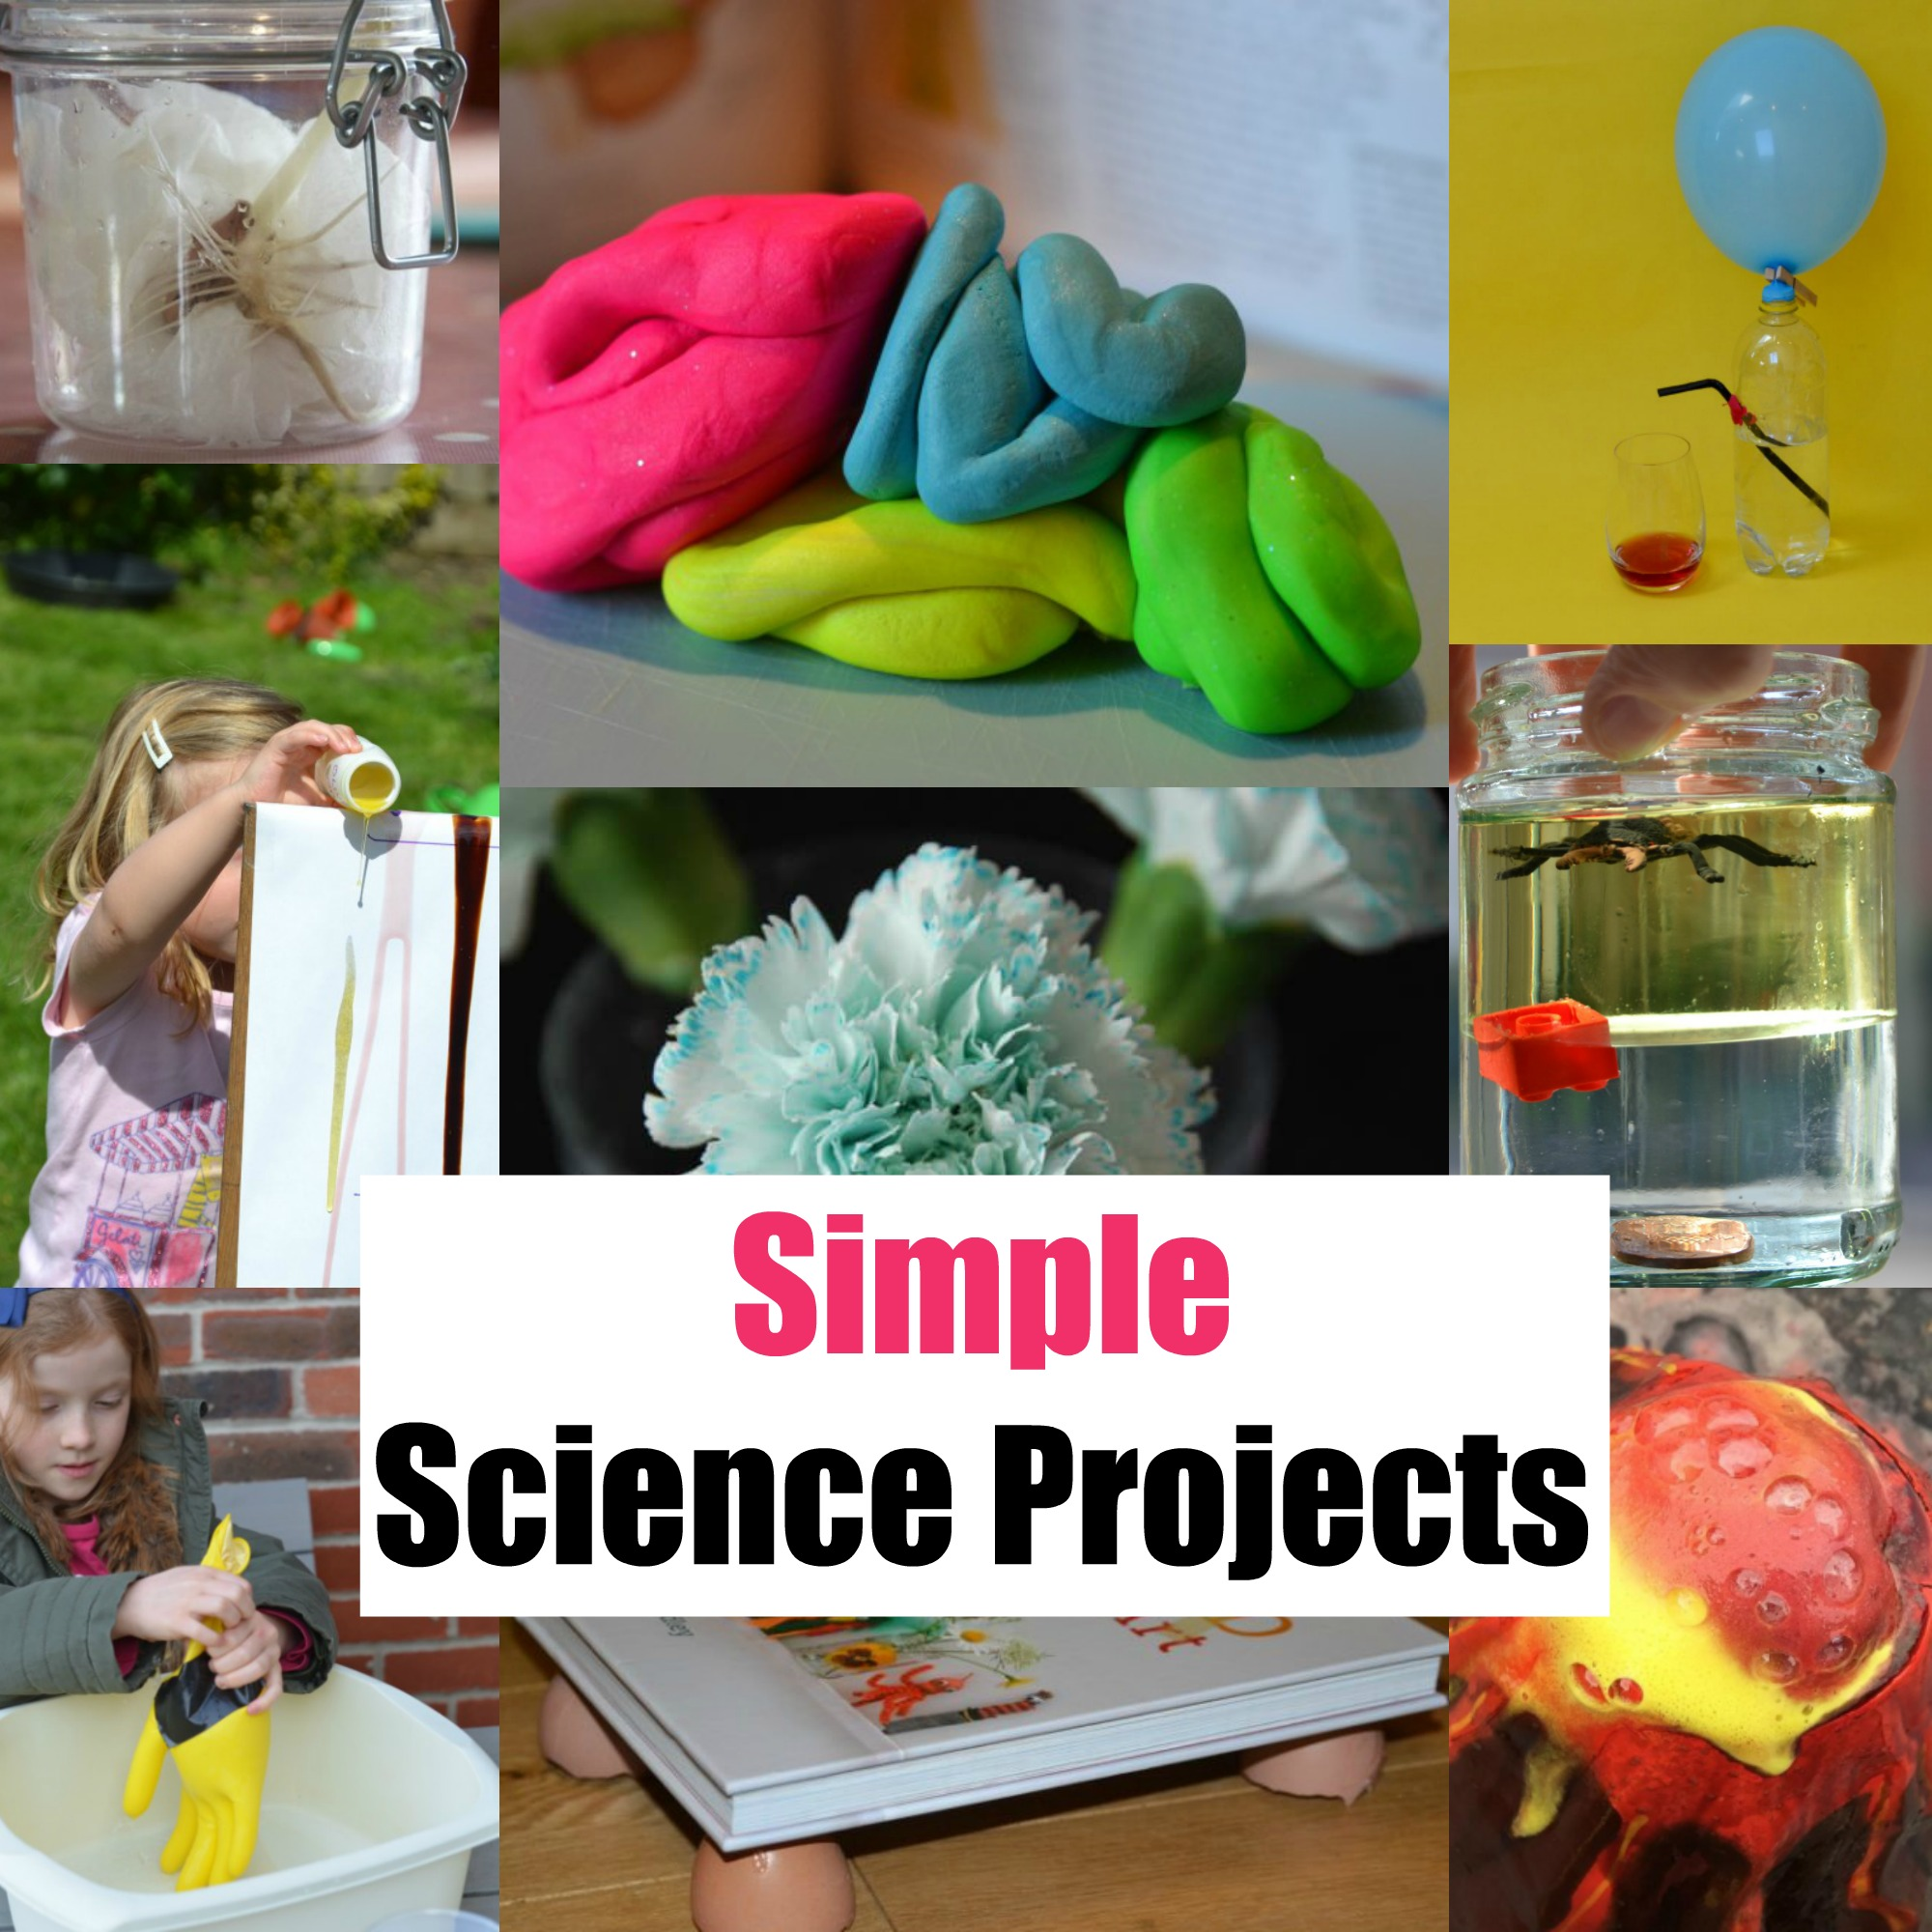 projects science simple sparks awesome pressure air